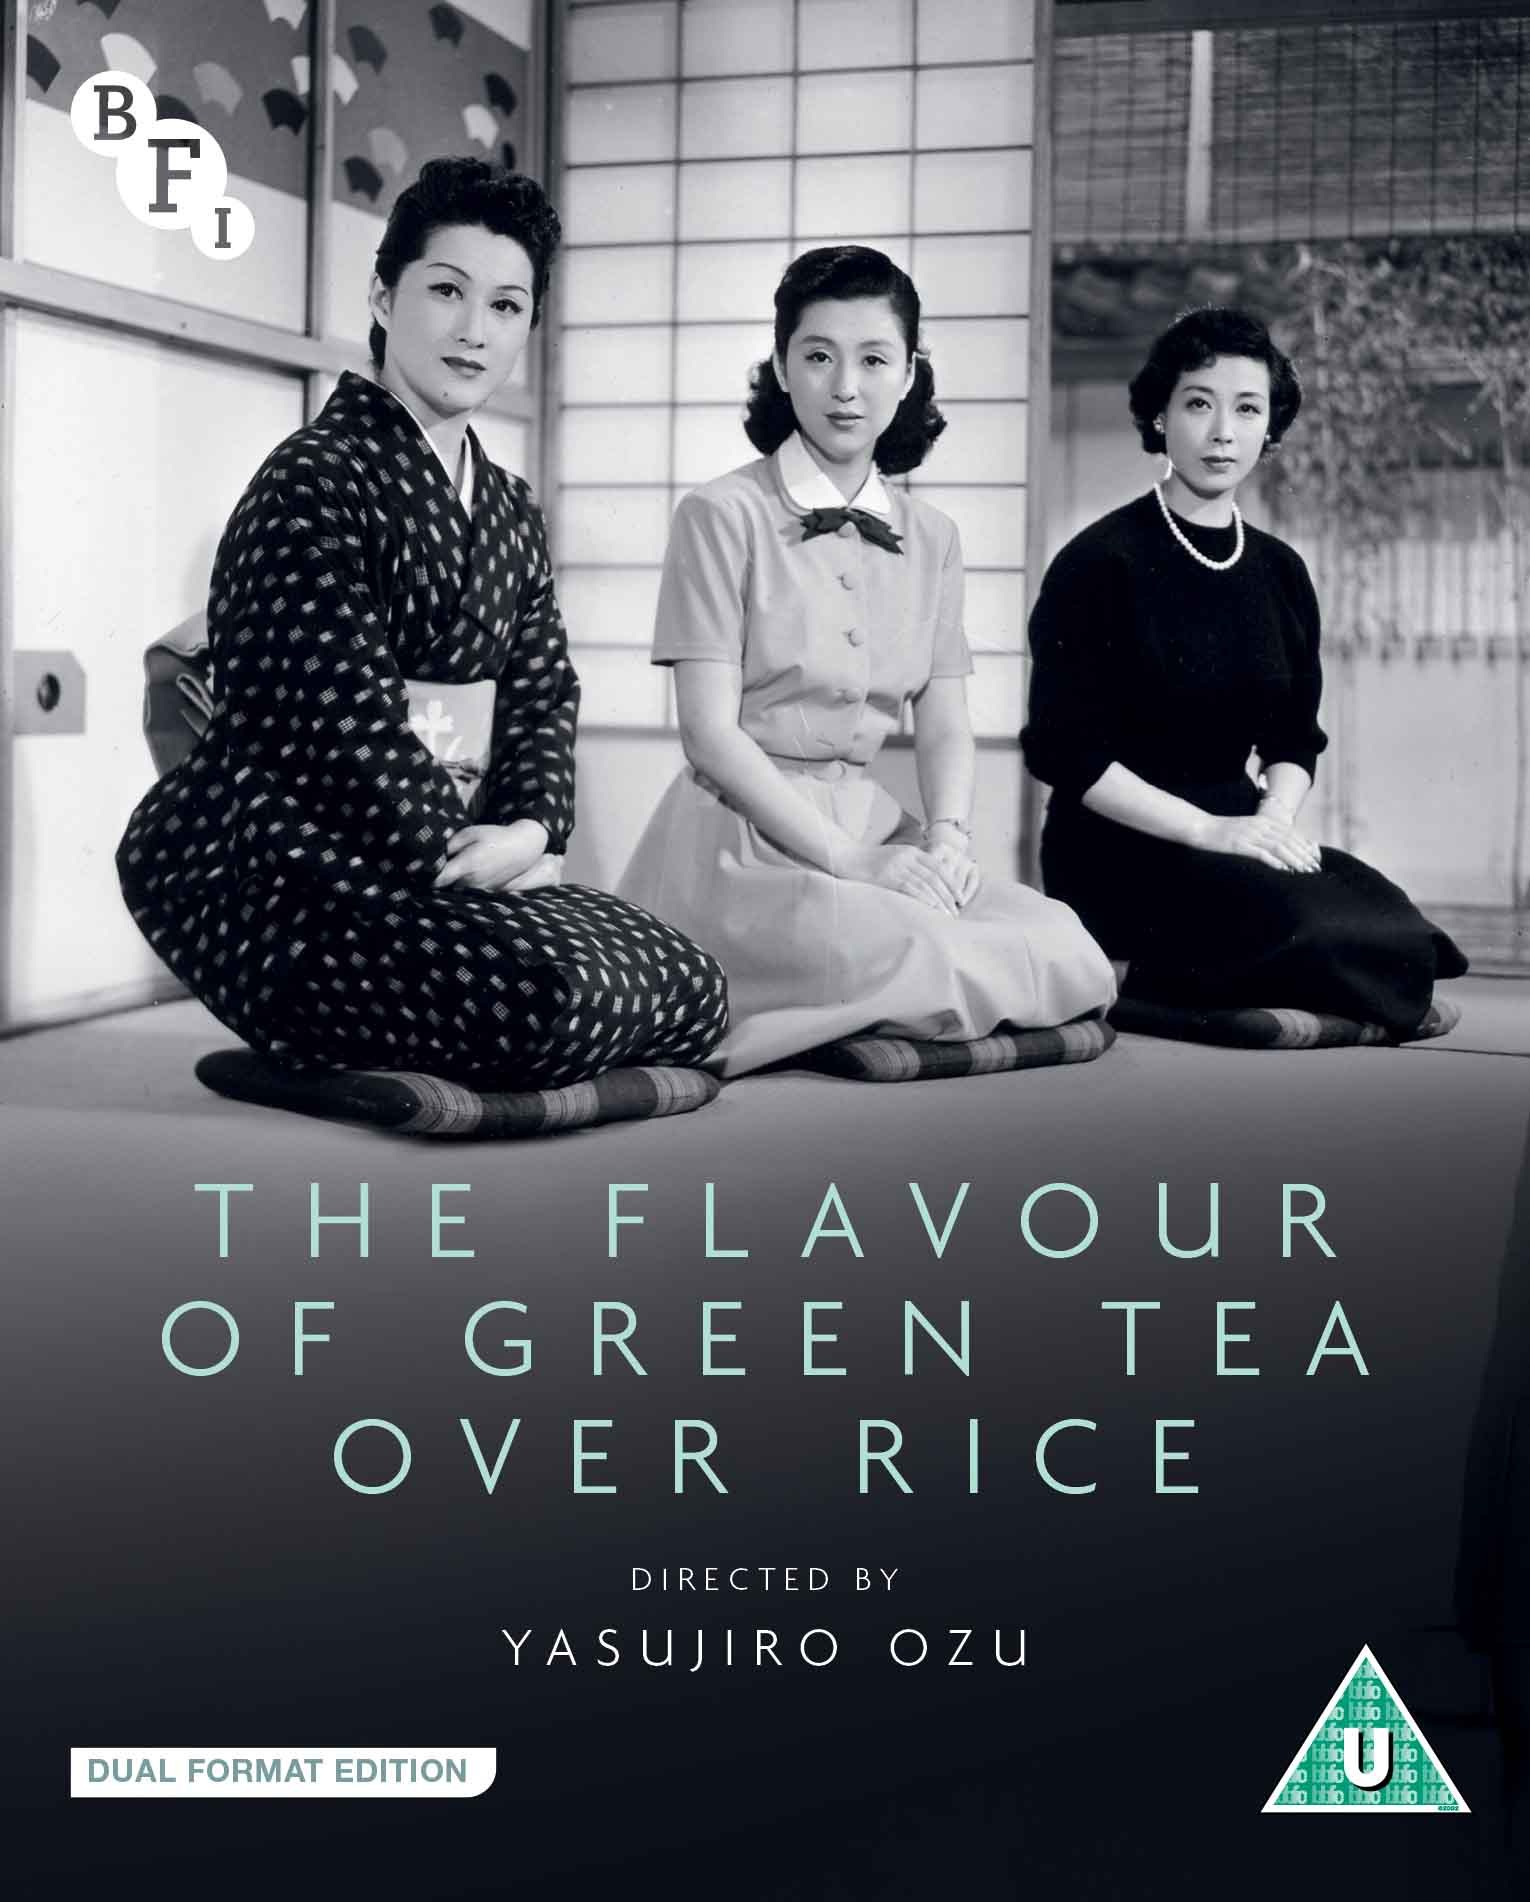 Buy PRE-ORDER The Flavour of Green Tea Over Rice (Dual Format Edition)